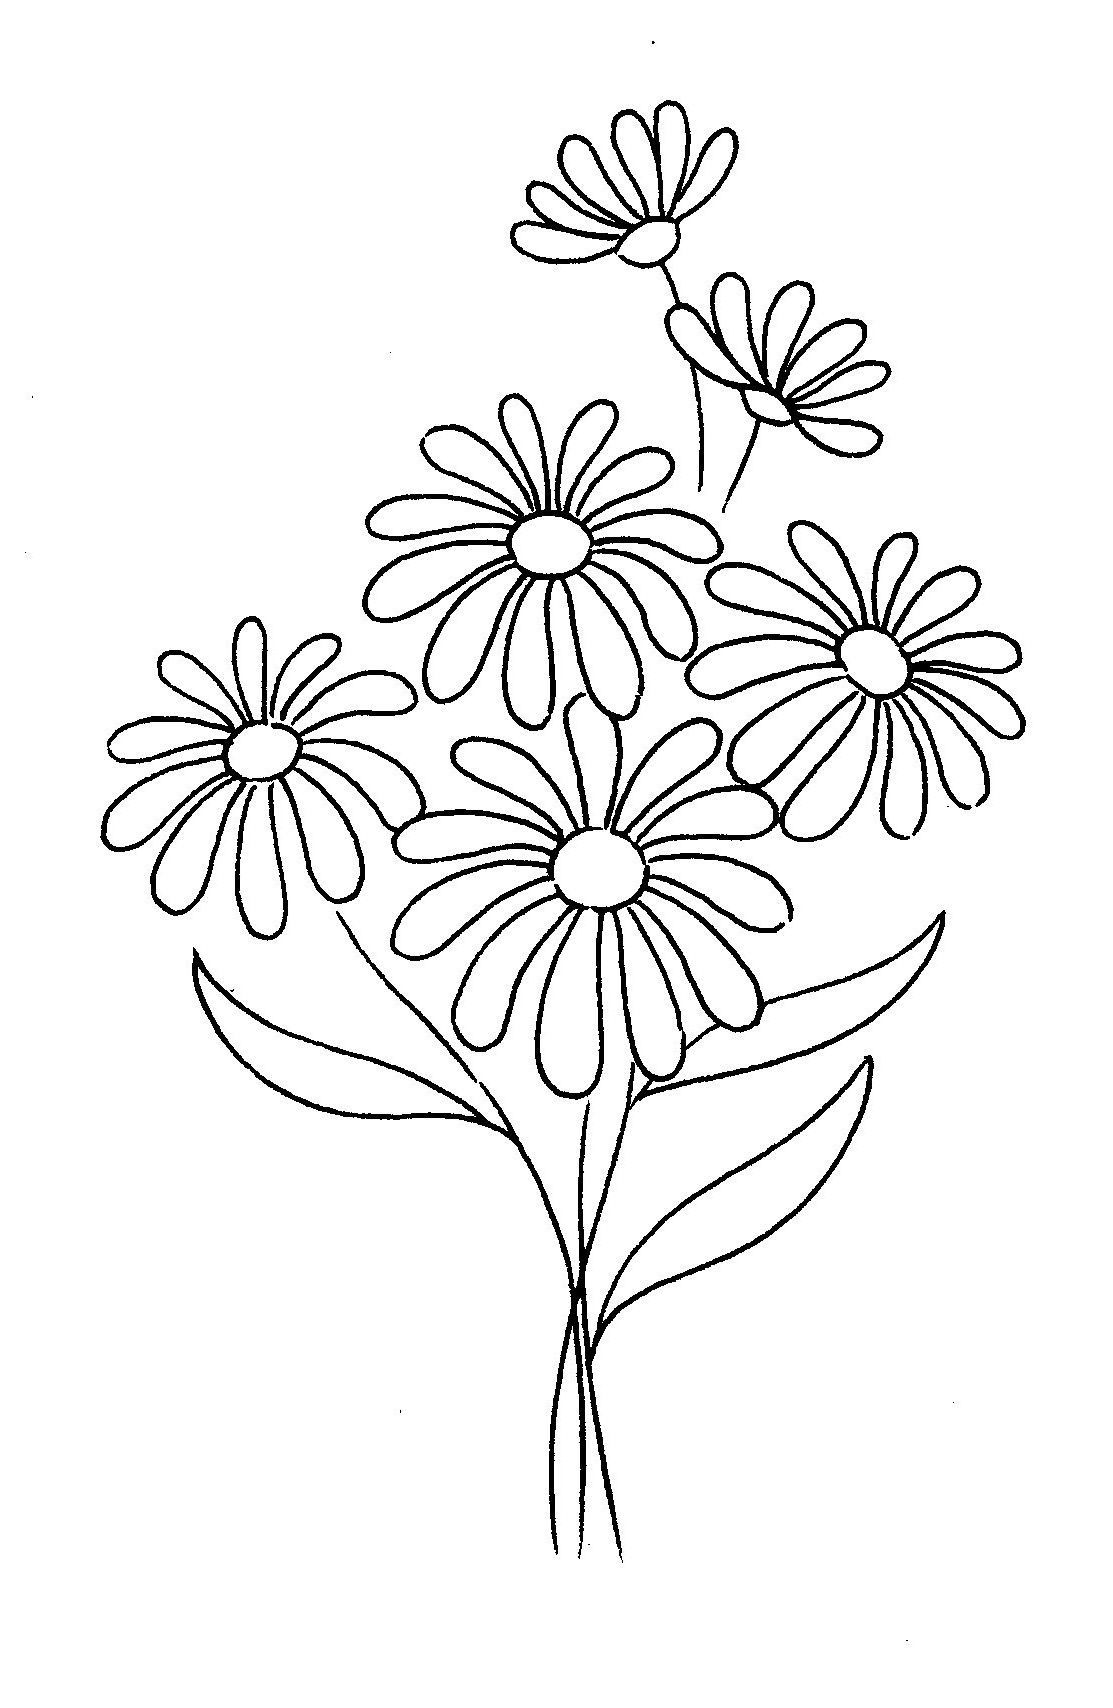 Flower Line Drawing Tumblr : Daisy flower sketch pixshark images galleries